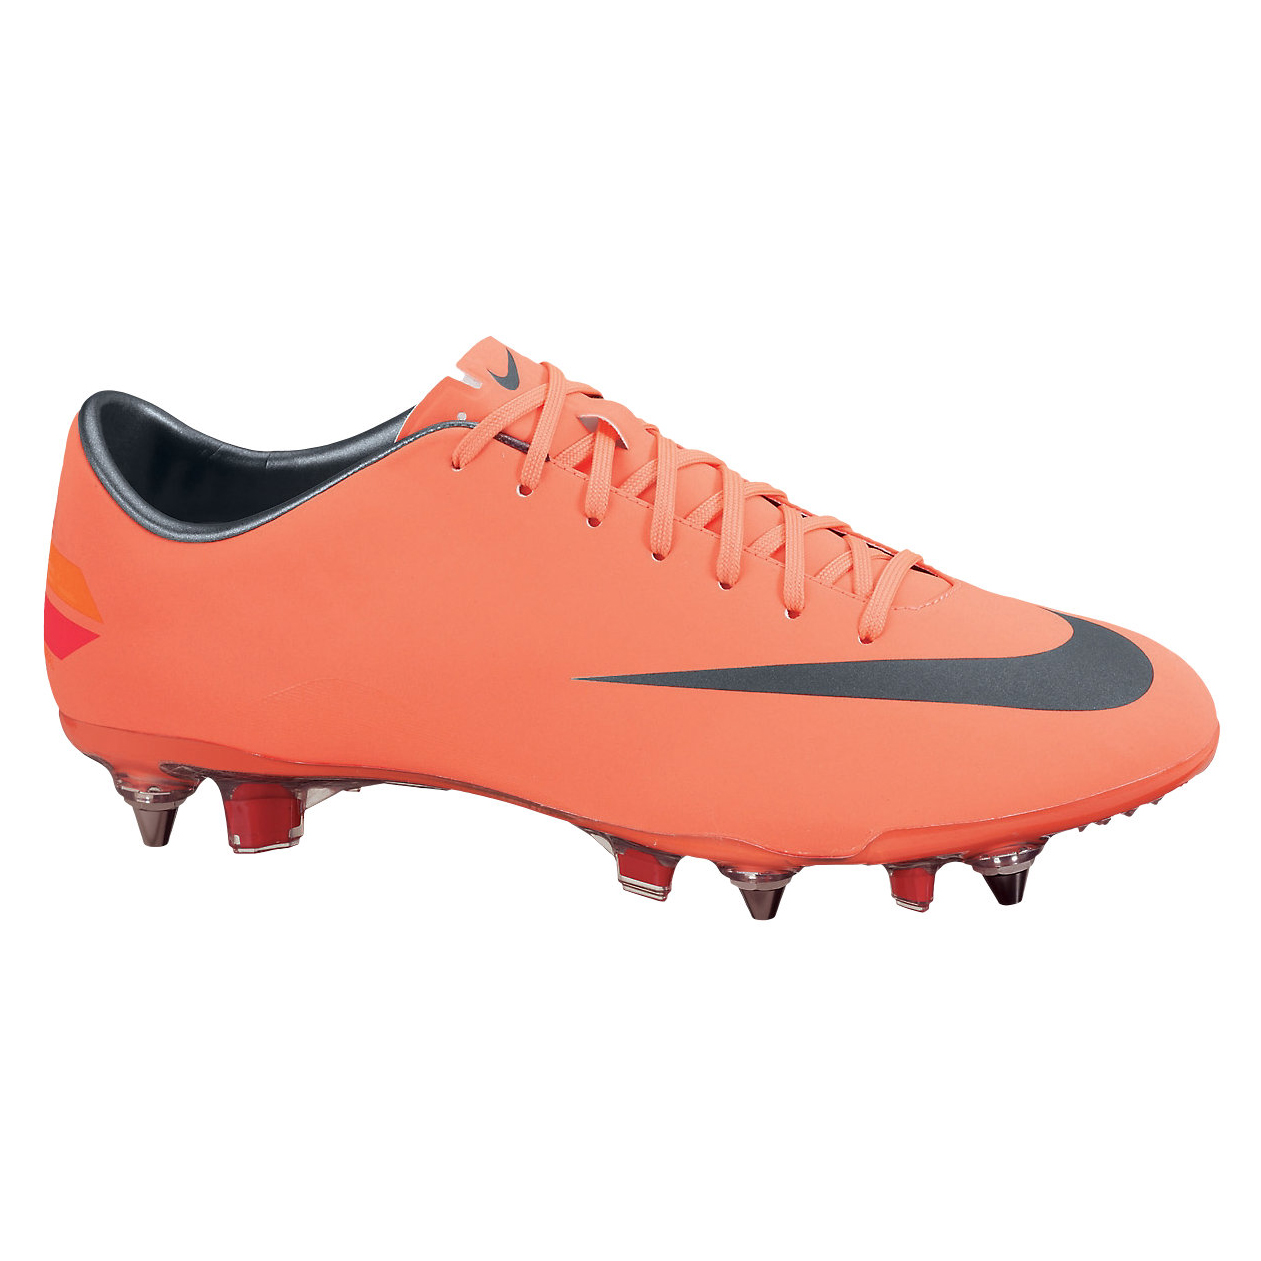 Nike Mercurial Vapor VIII Soft Ground Pro Football Boots - Bright Mango/Metalic Dark Grey